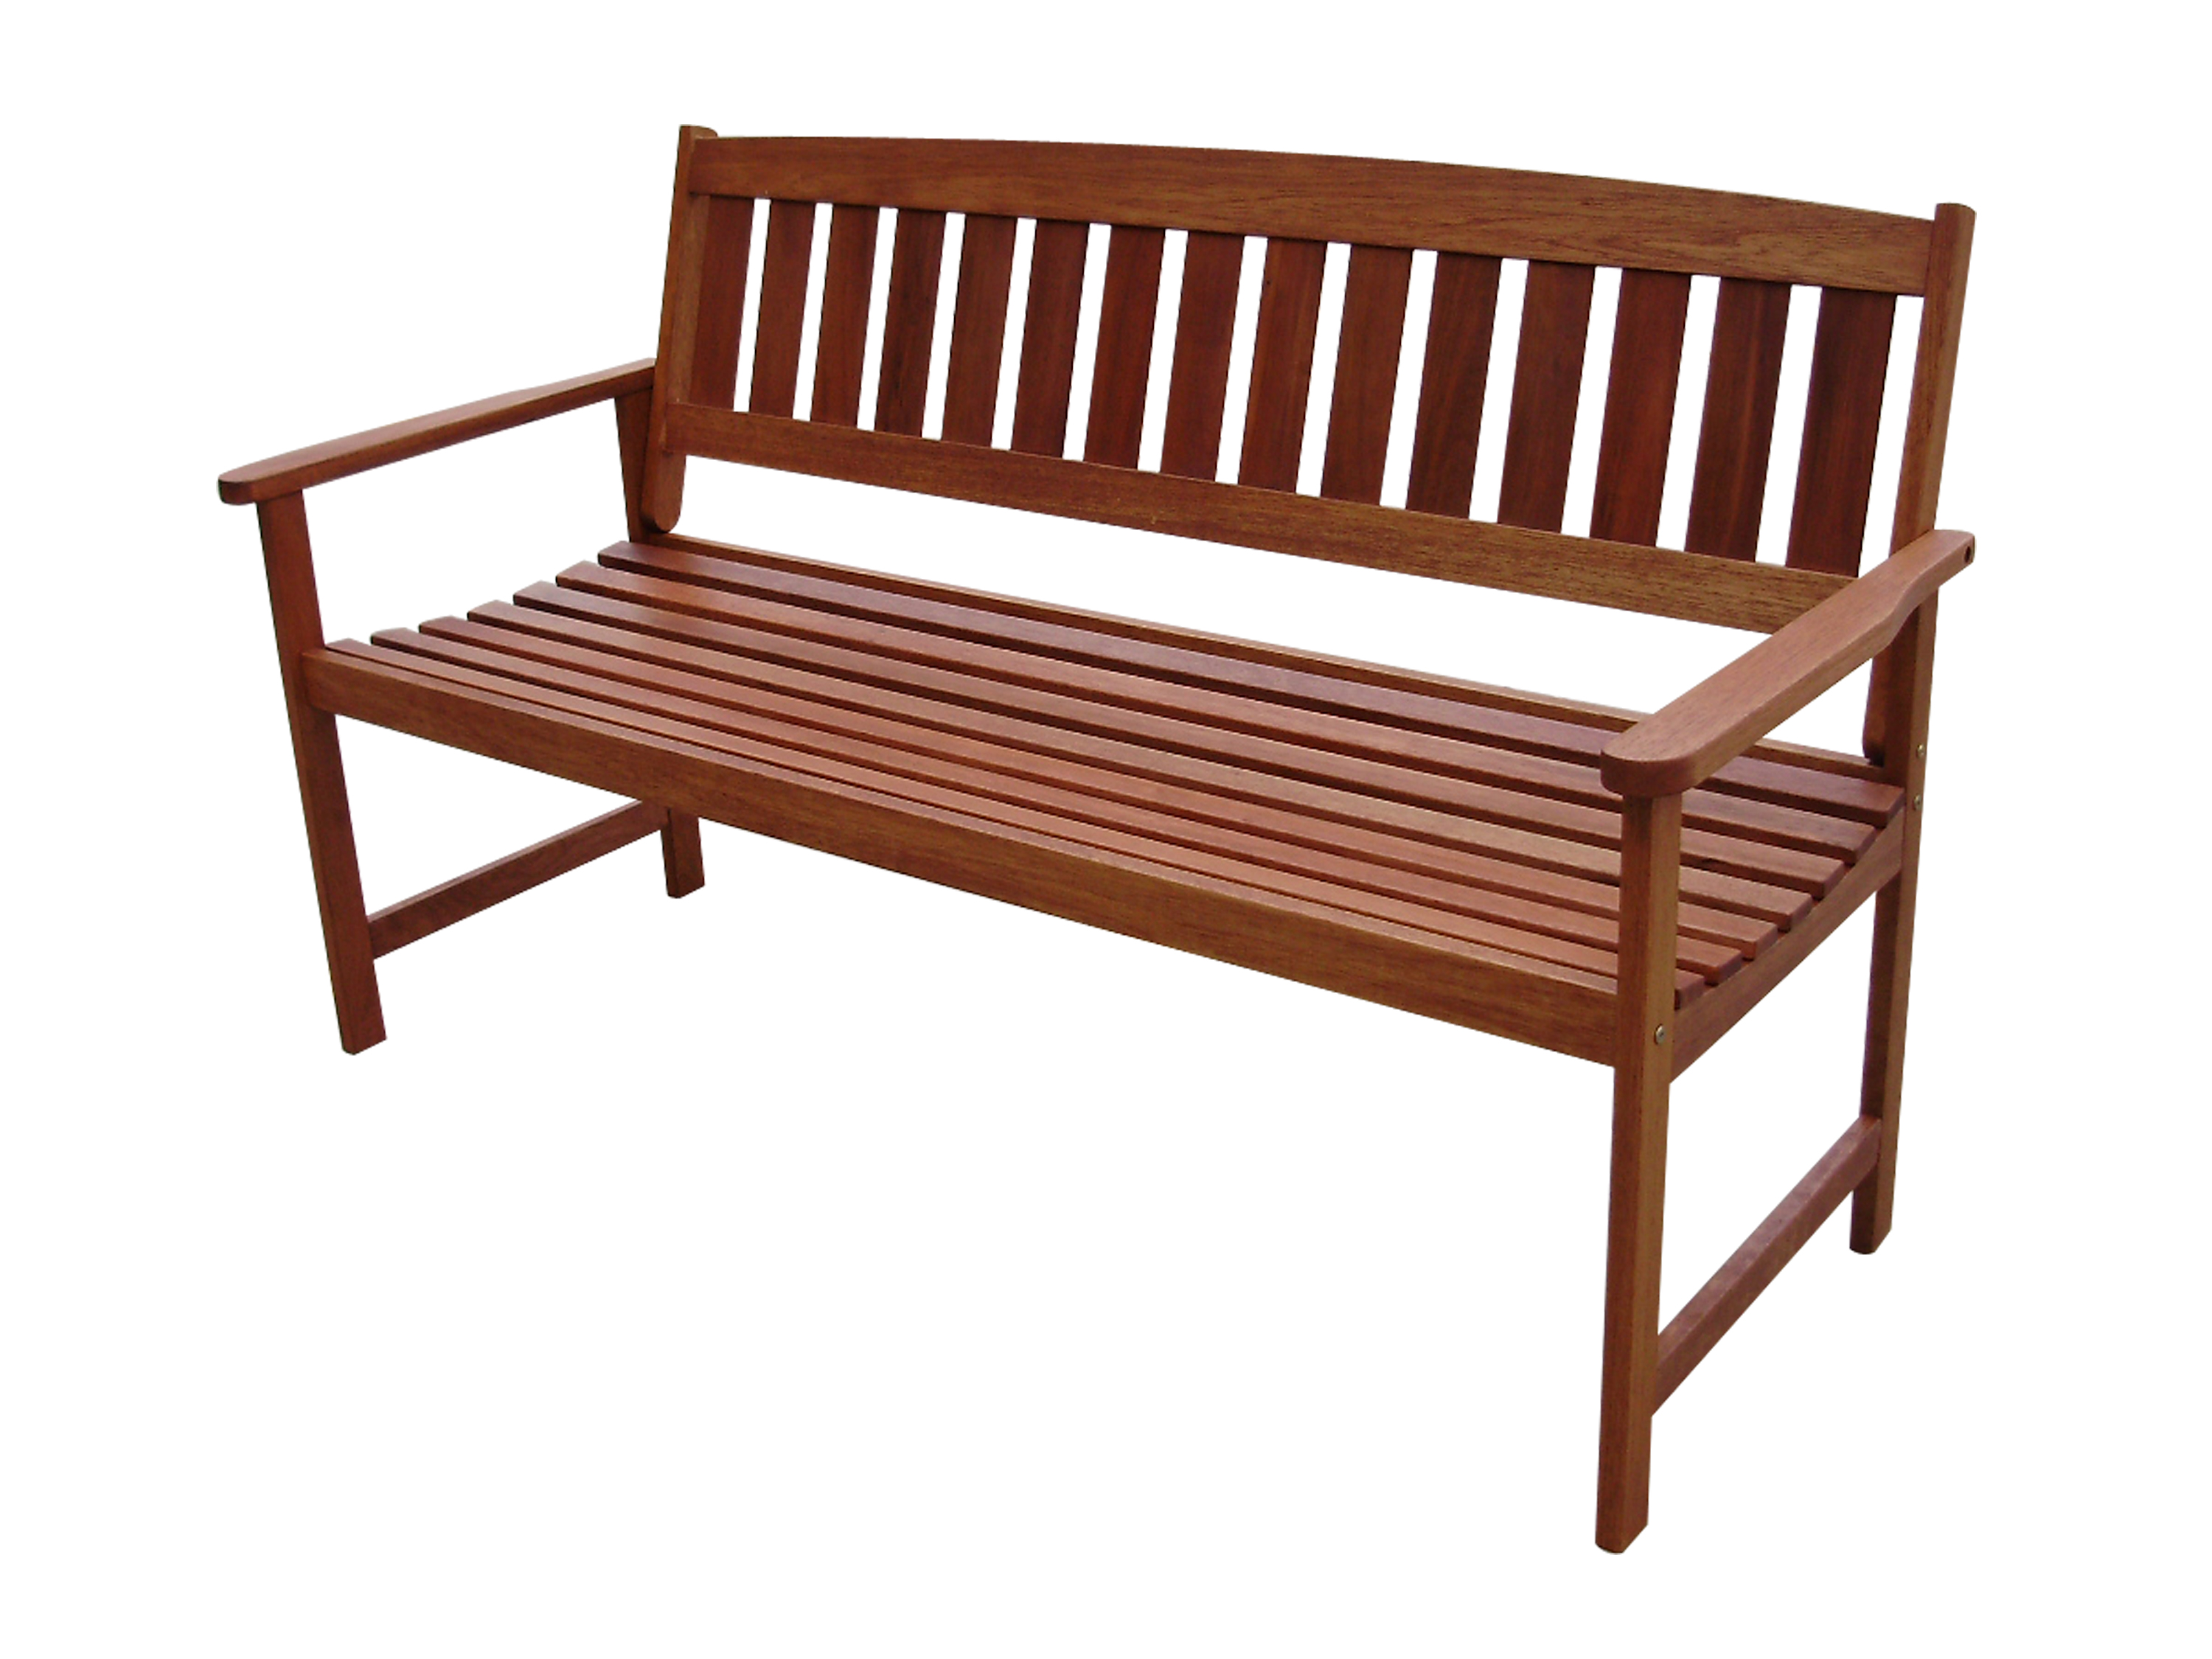 vonhaus 3 seater hardwood wooden garden bench outdoor